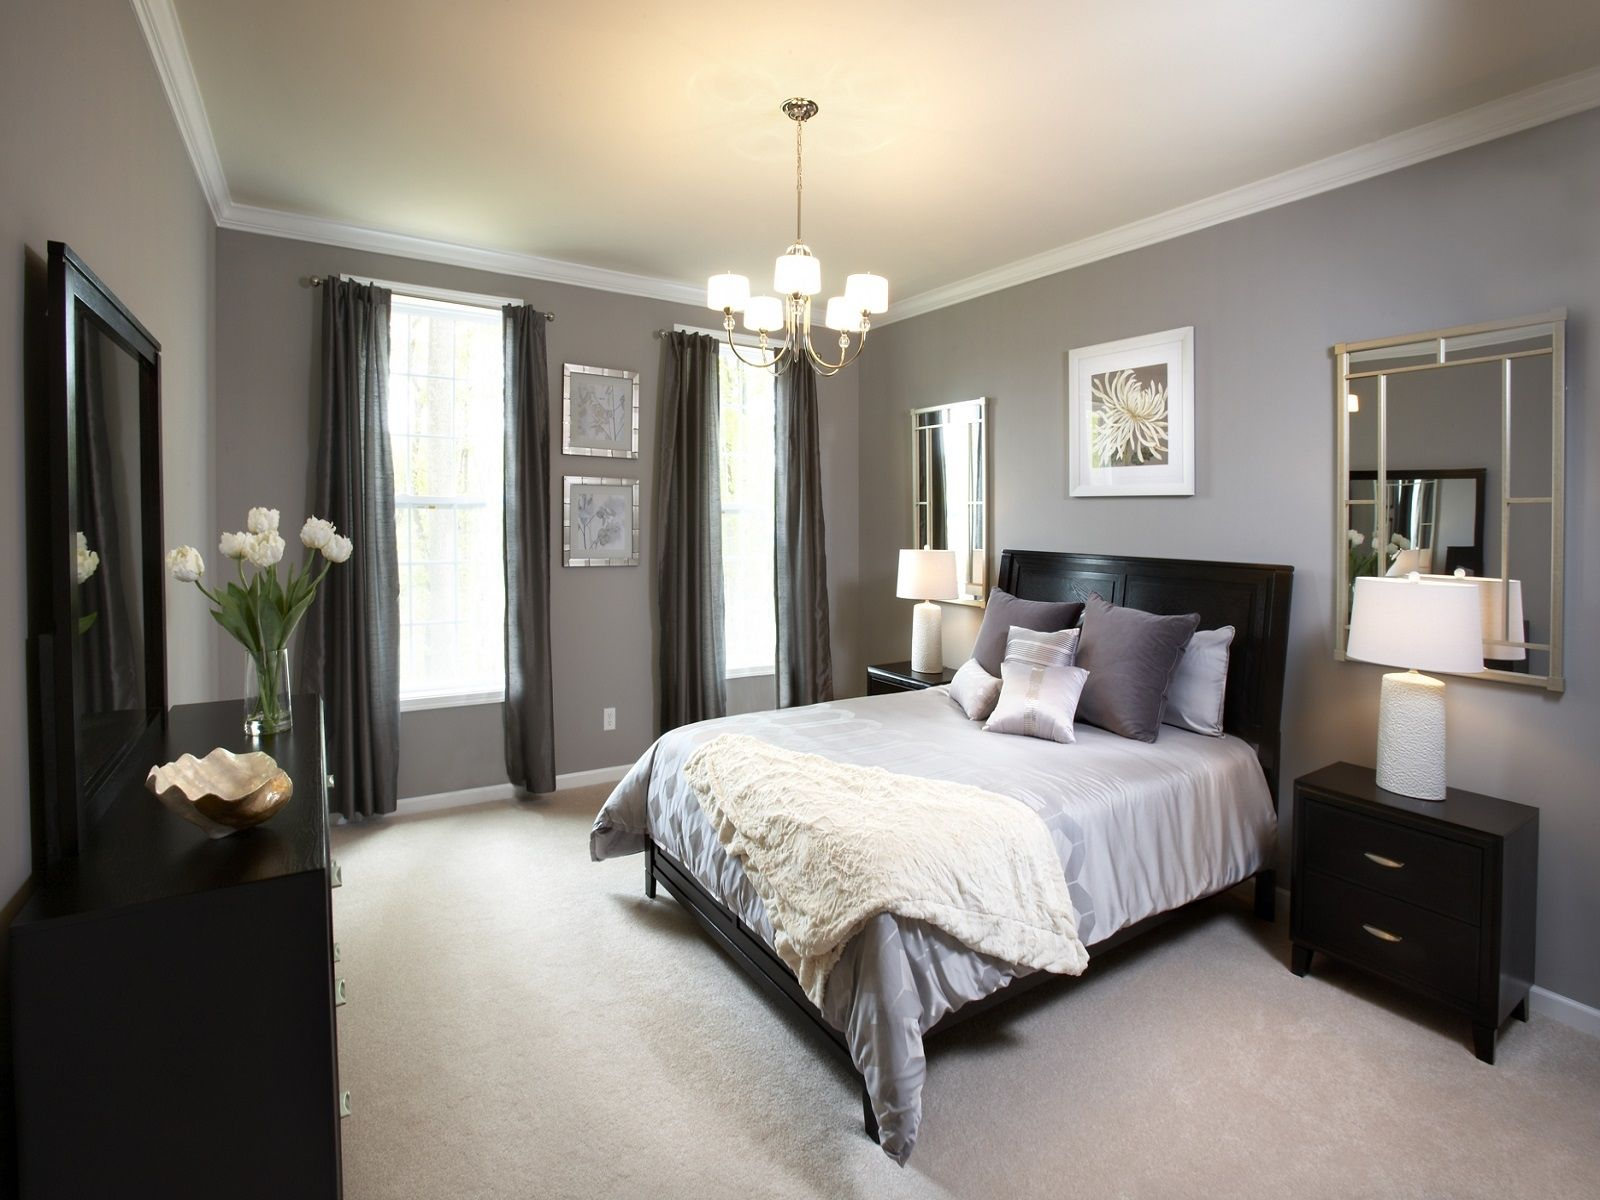 Captivating Brilliant Decorating Bedroom Ideas With Black Bed And Dark Dresser Near  Grey Painted Wall